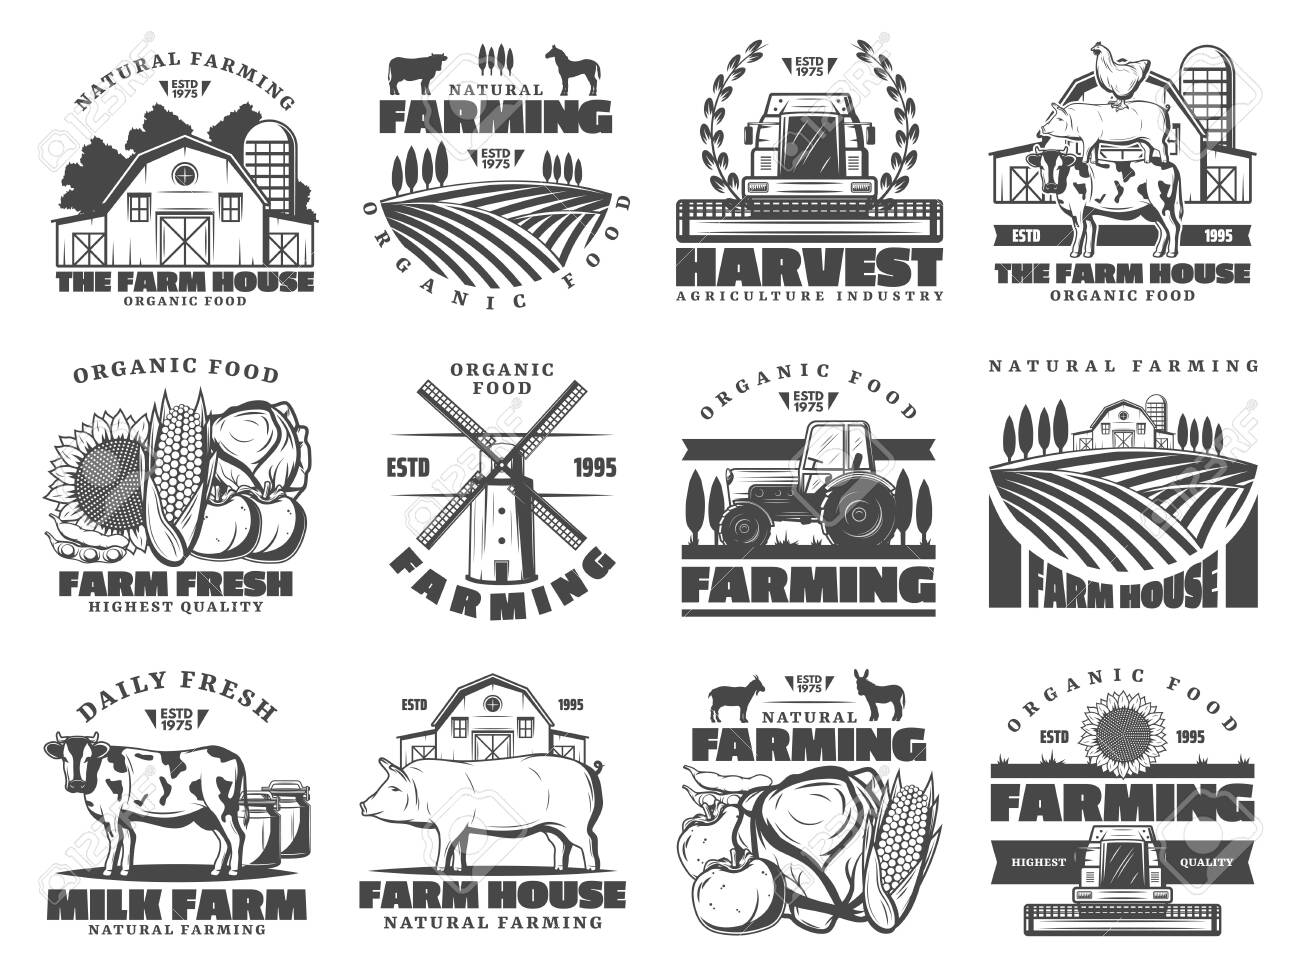 Farm agriculture and cattle industry, farming food production. Vector icons of cattle farm cow and pig animals, poultry chicken, organic vegetables and fruits harvest, farmhouse meat products - 124634539